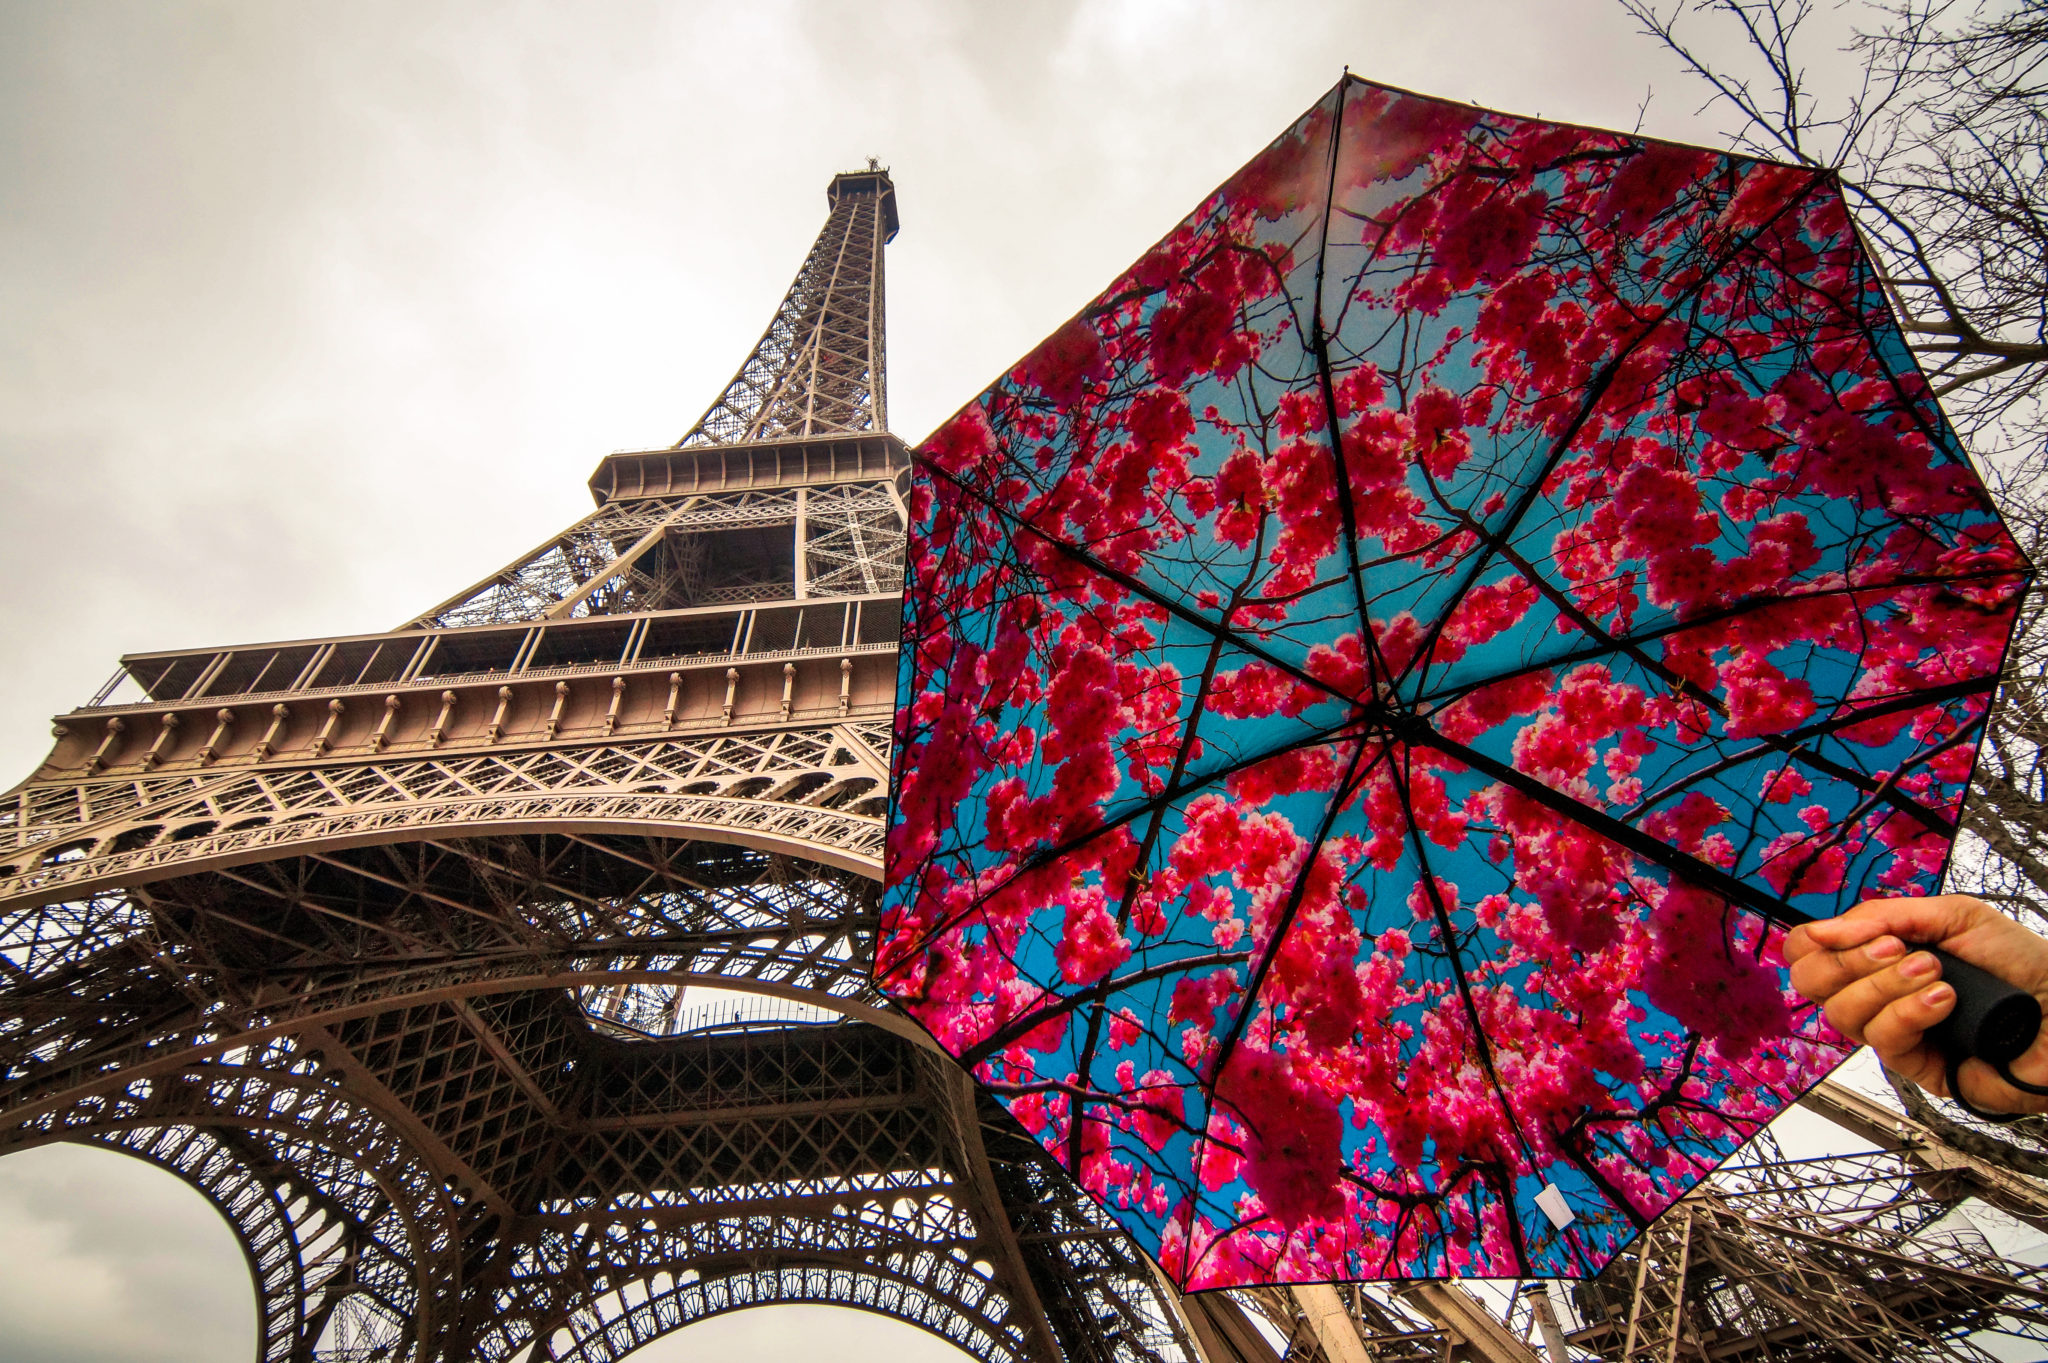 Hemaposesesvalises_Happysweeds_Cherry_Umbrella_Tour_Eiffel